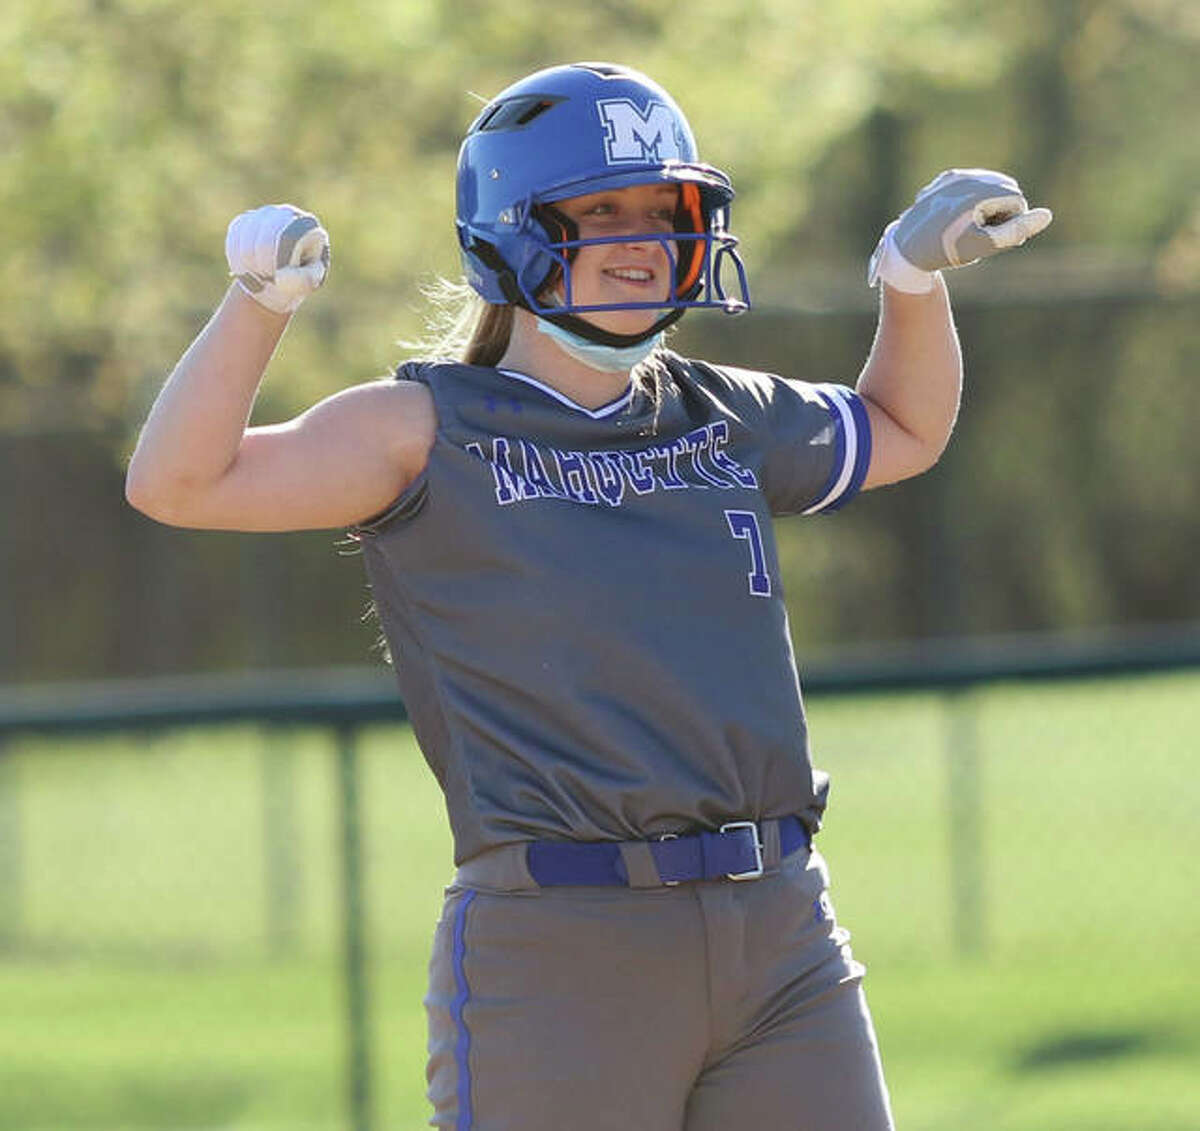 Marquette's KB Kirchner acknowledges cheers from the Explorers dugout after her two-run double in the fourth inning Monday at Moore Park in Alton.